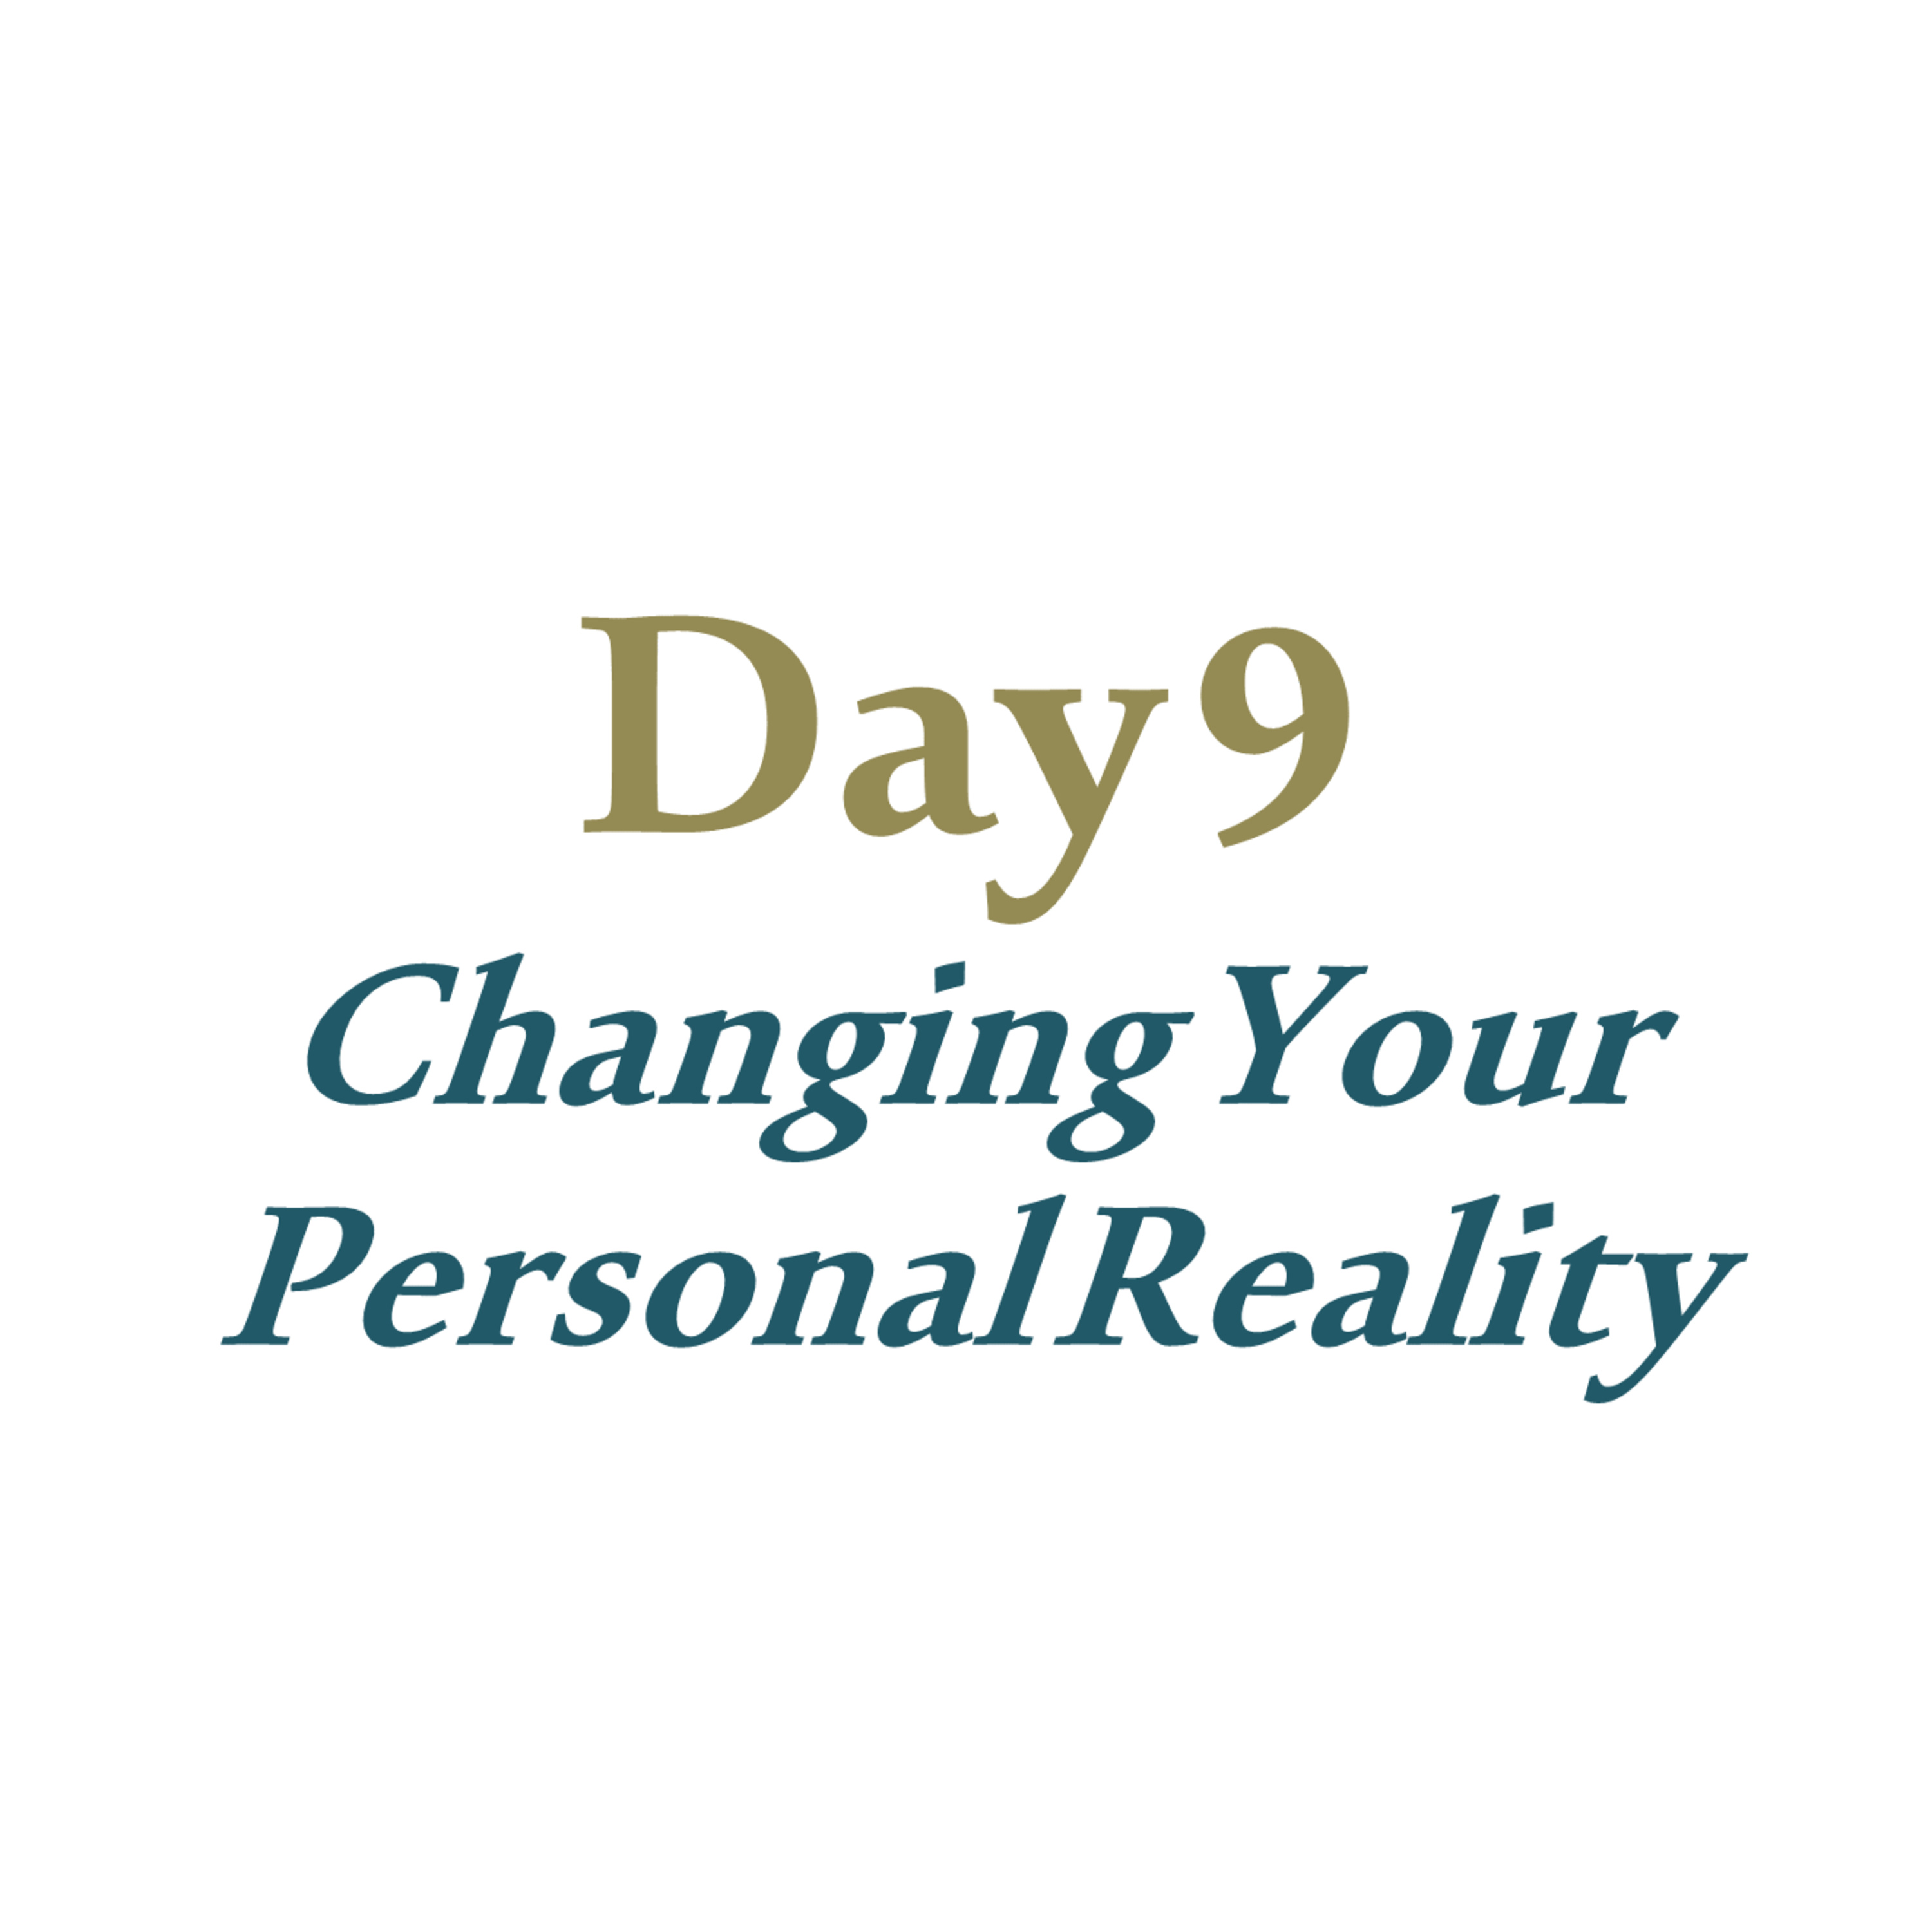 Day 9 - Changing Your Personal Reality